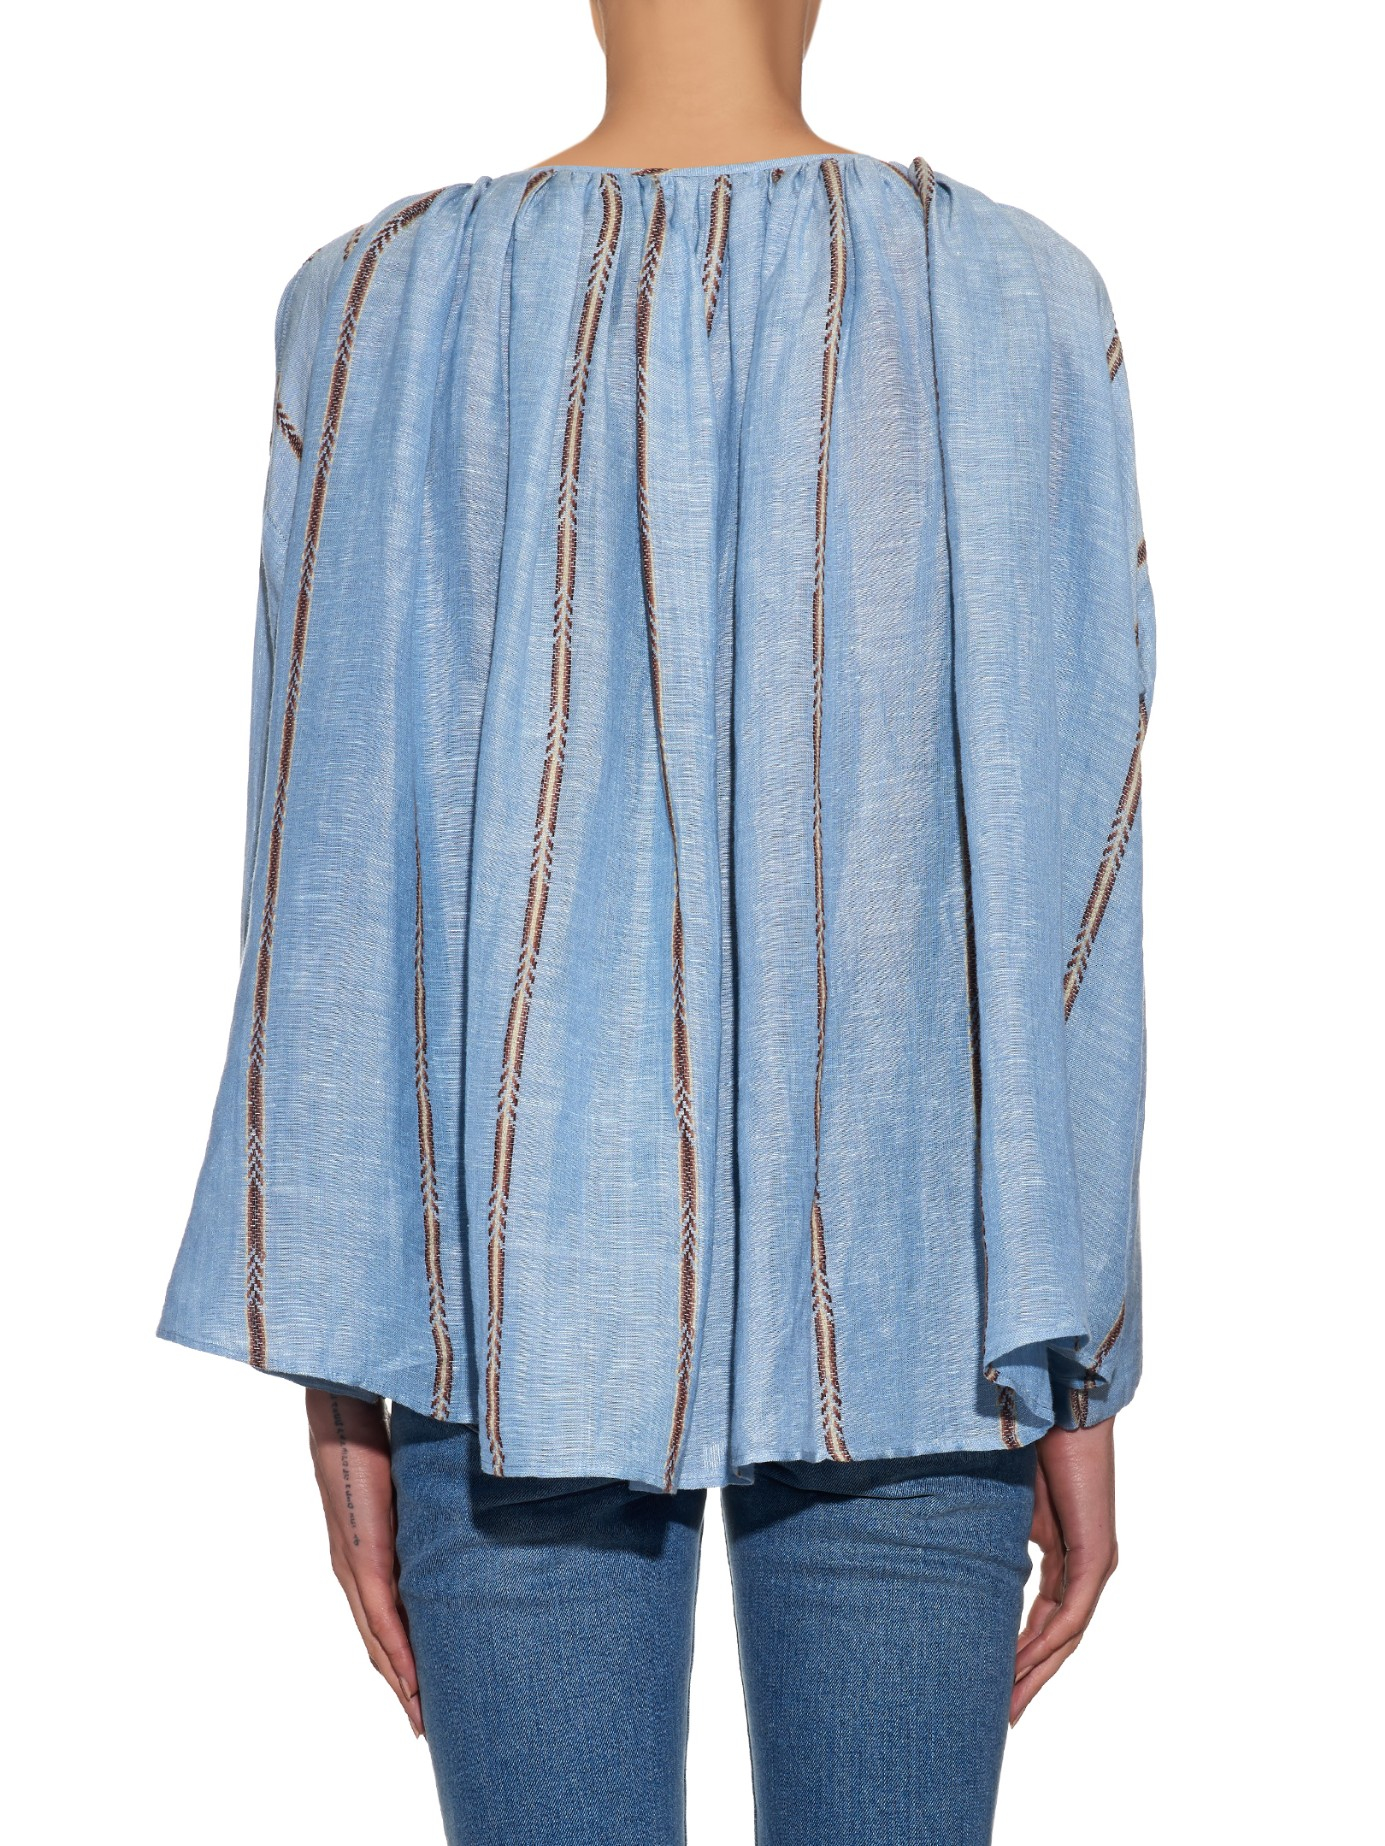 Galet blouse with ecru and blue stripes Mes Demoiselles... Outlet Deals 8NWO4s